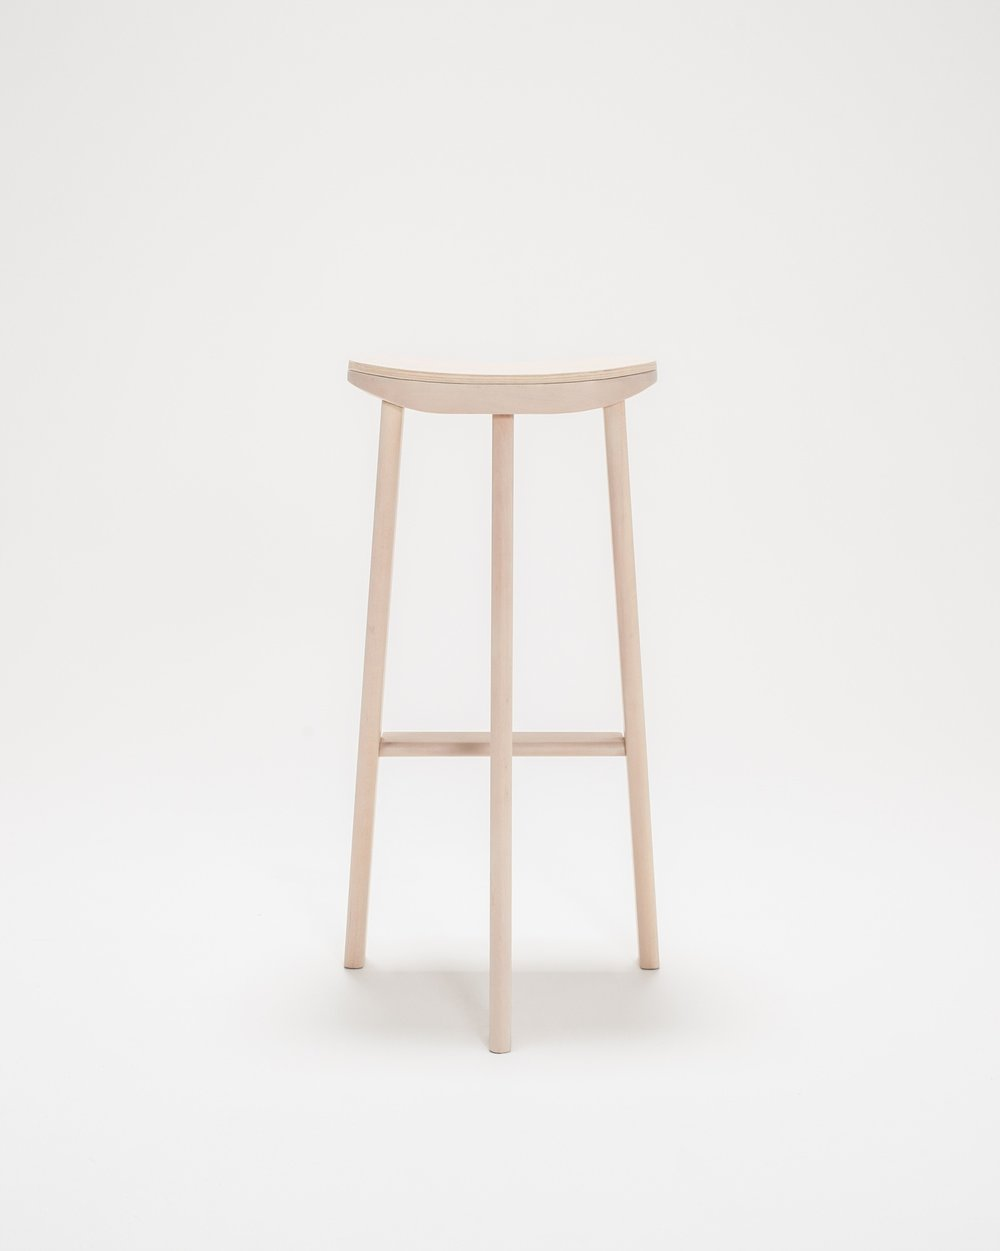 Thom Fougere Tripod Bar Stool